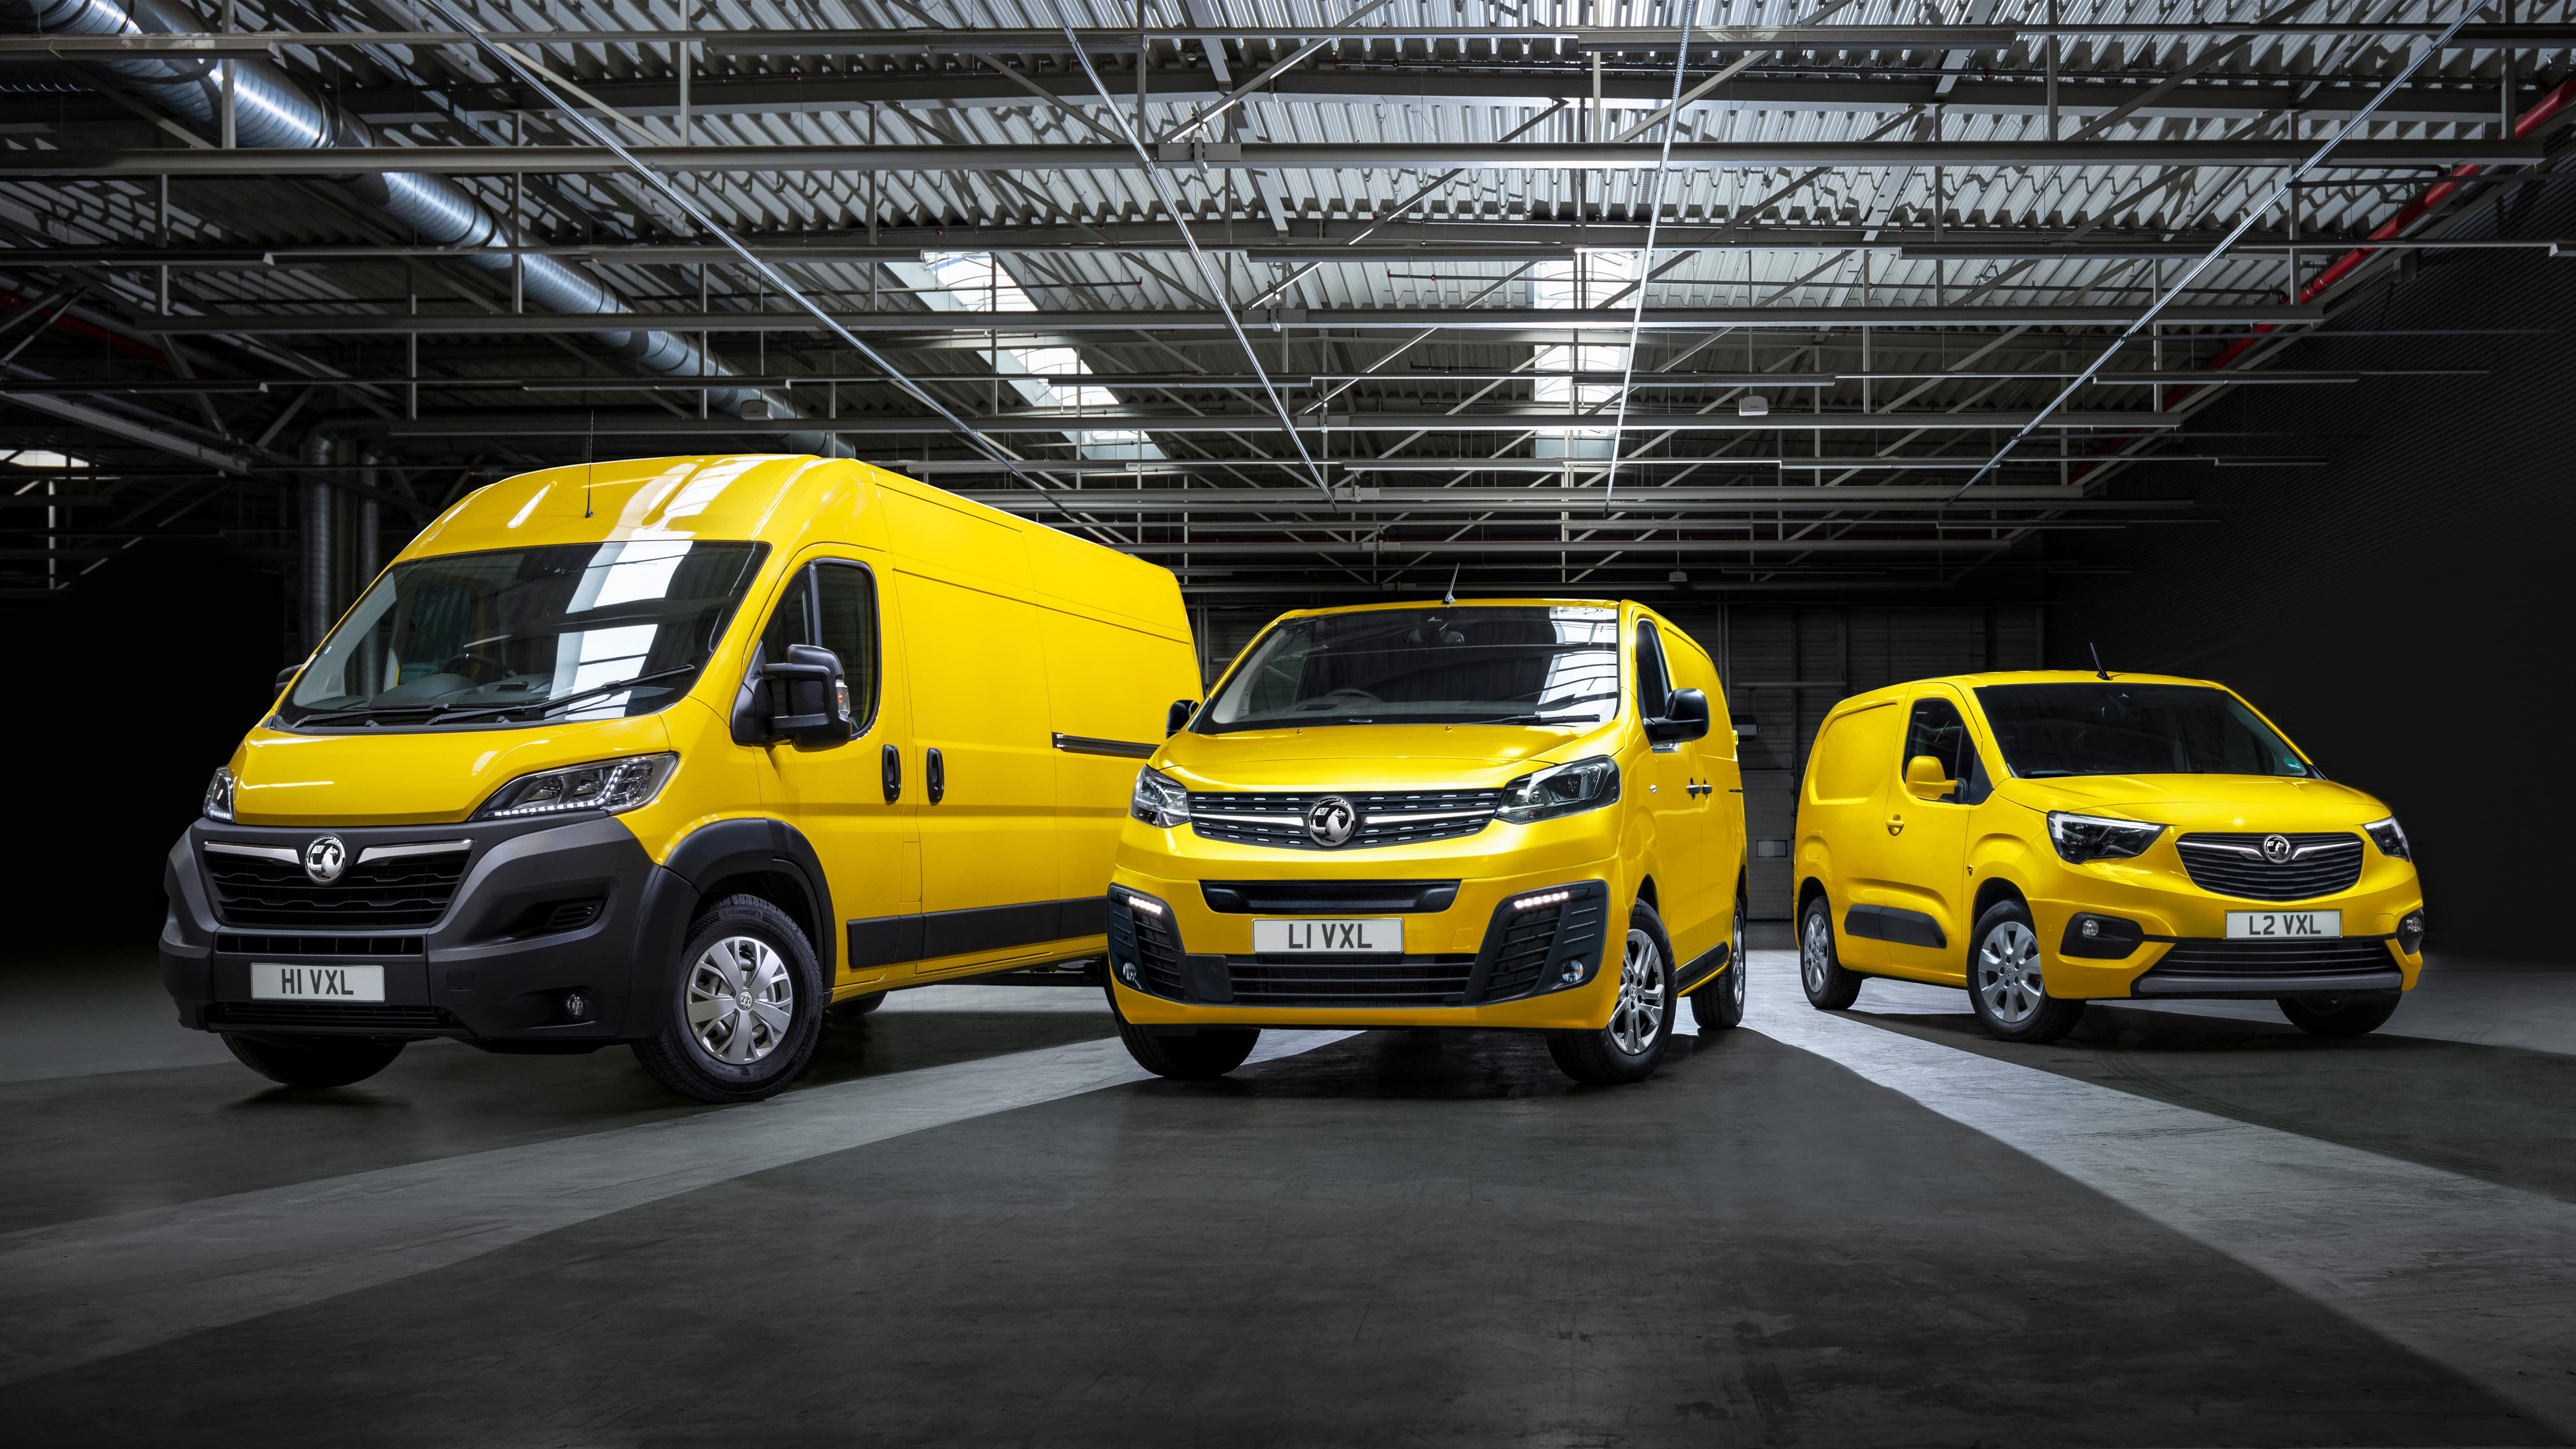 Vauxhall Global Debut of Movano-e & Combo-e at Commercial Vehicle Show